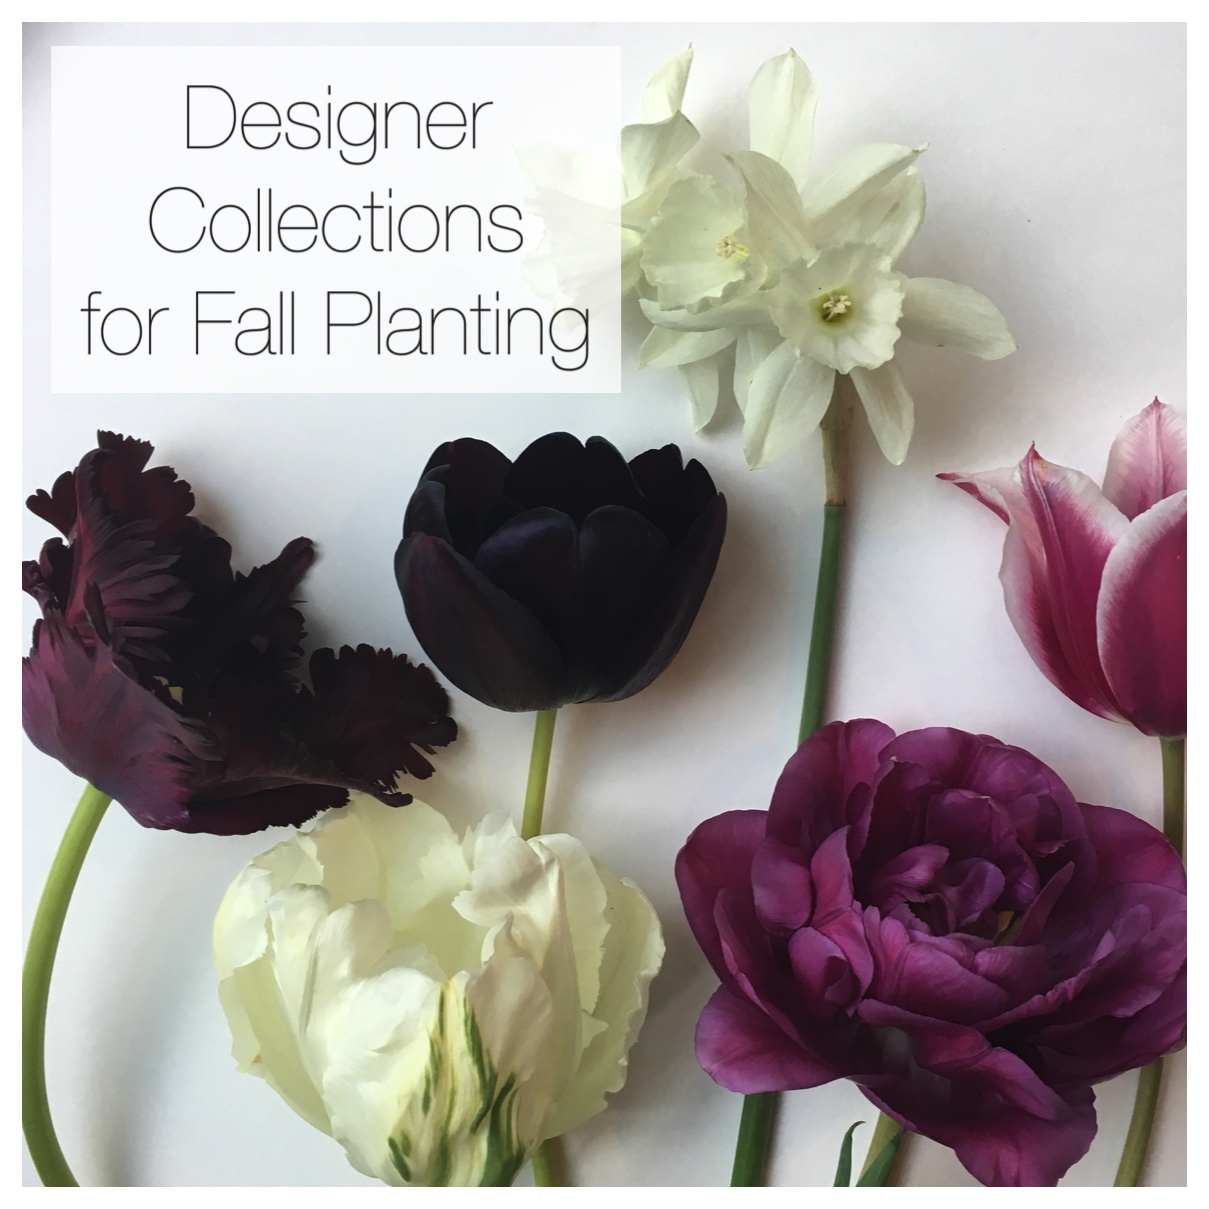 designer collections for fall planting - Longfield Gardens